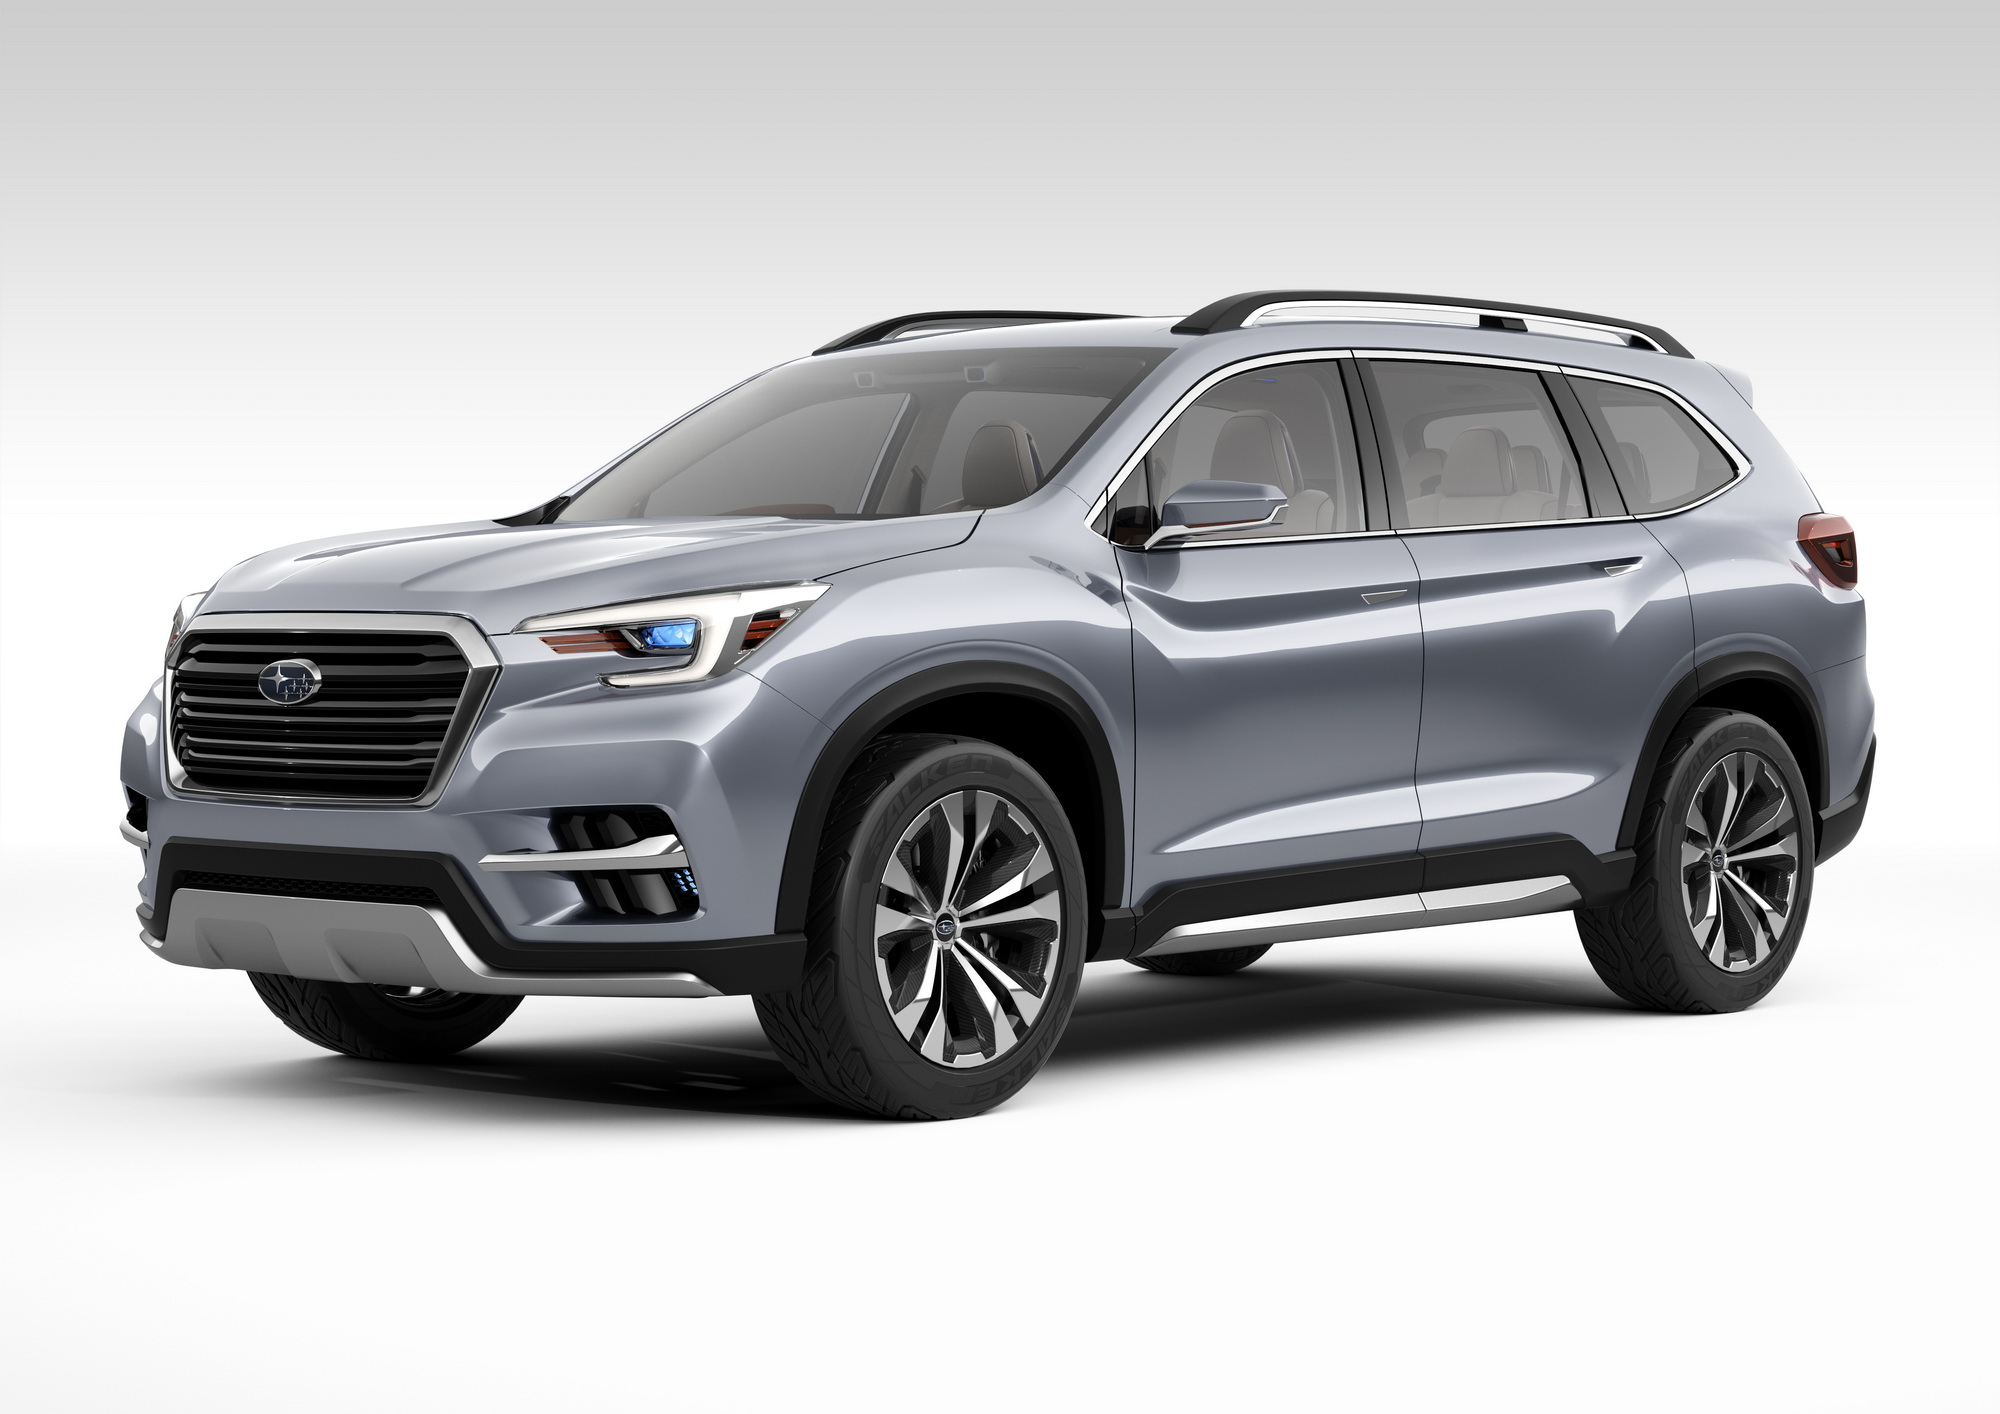 Subaru Ascent Suv Concept Begs One Question Why News Top Speed